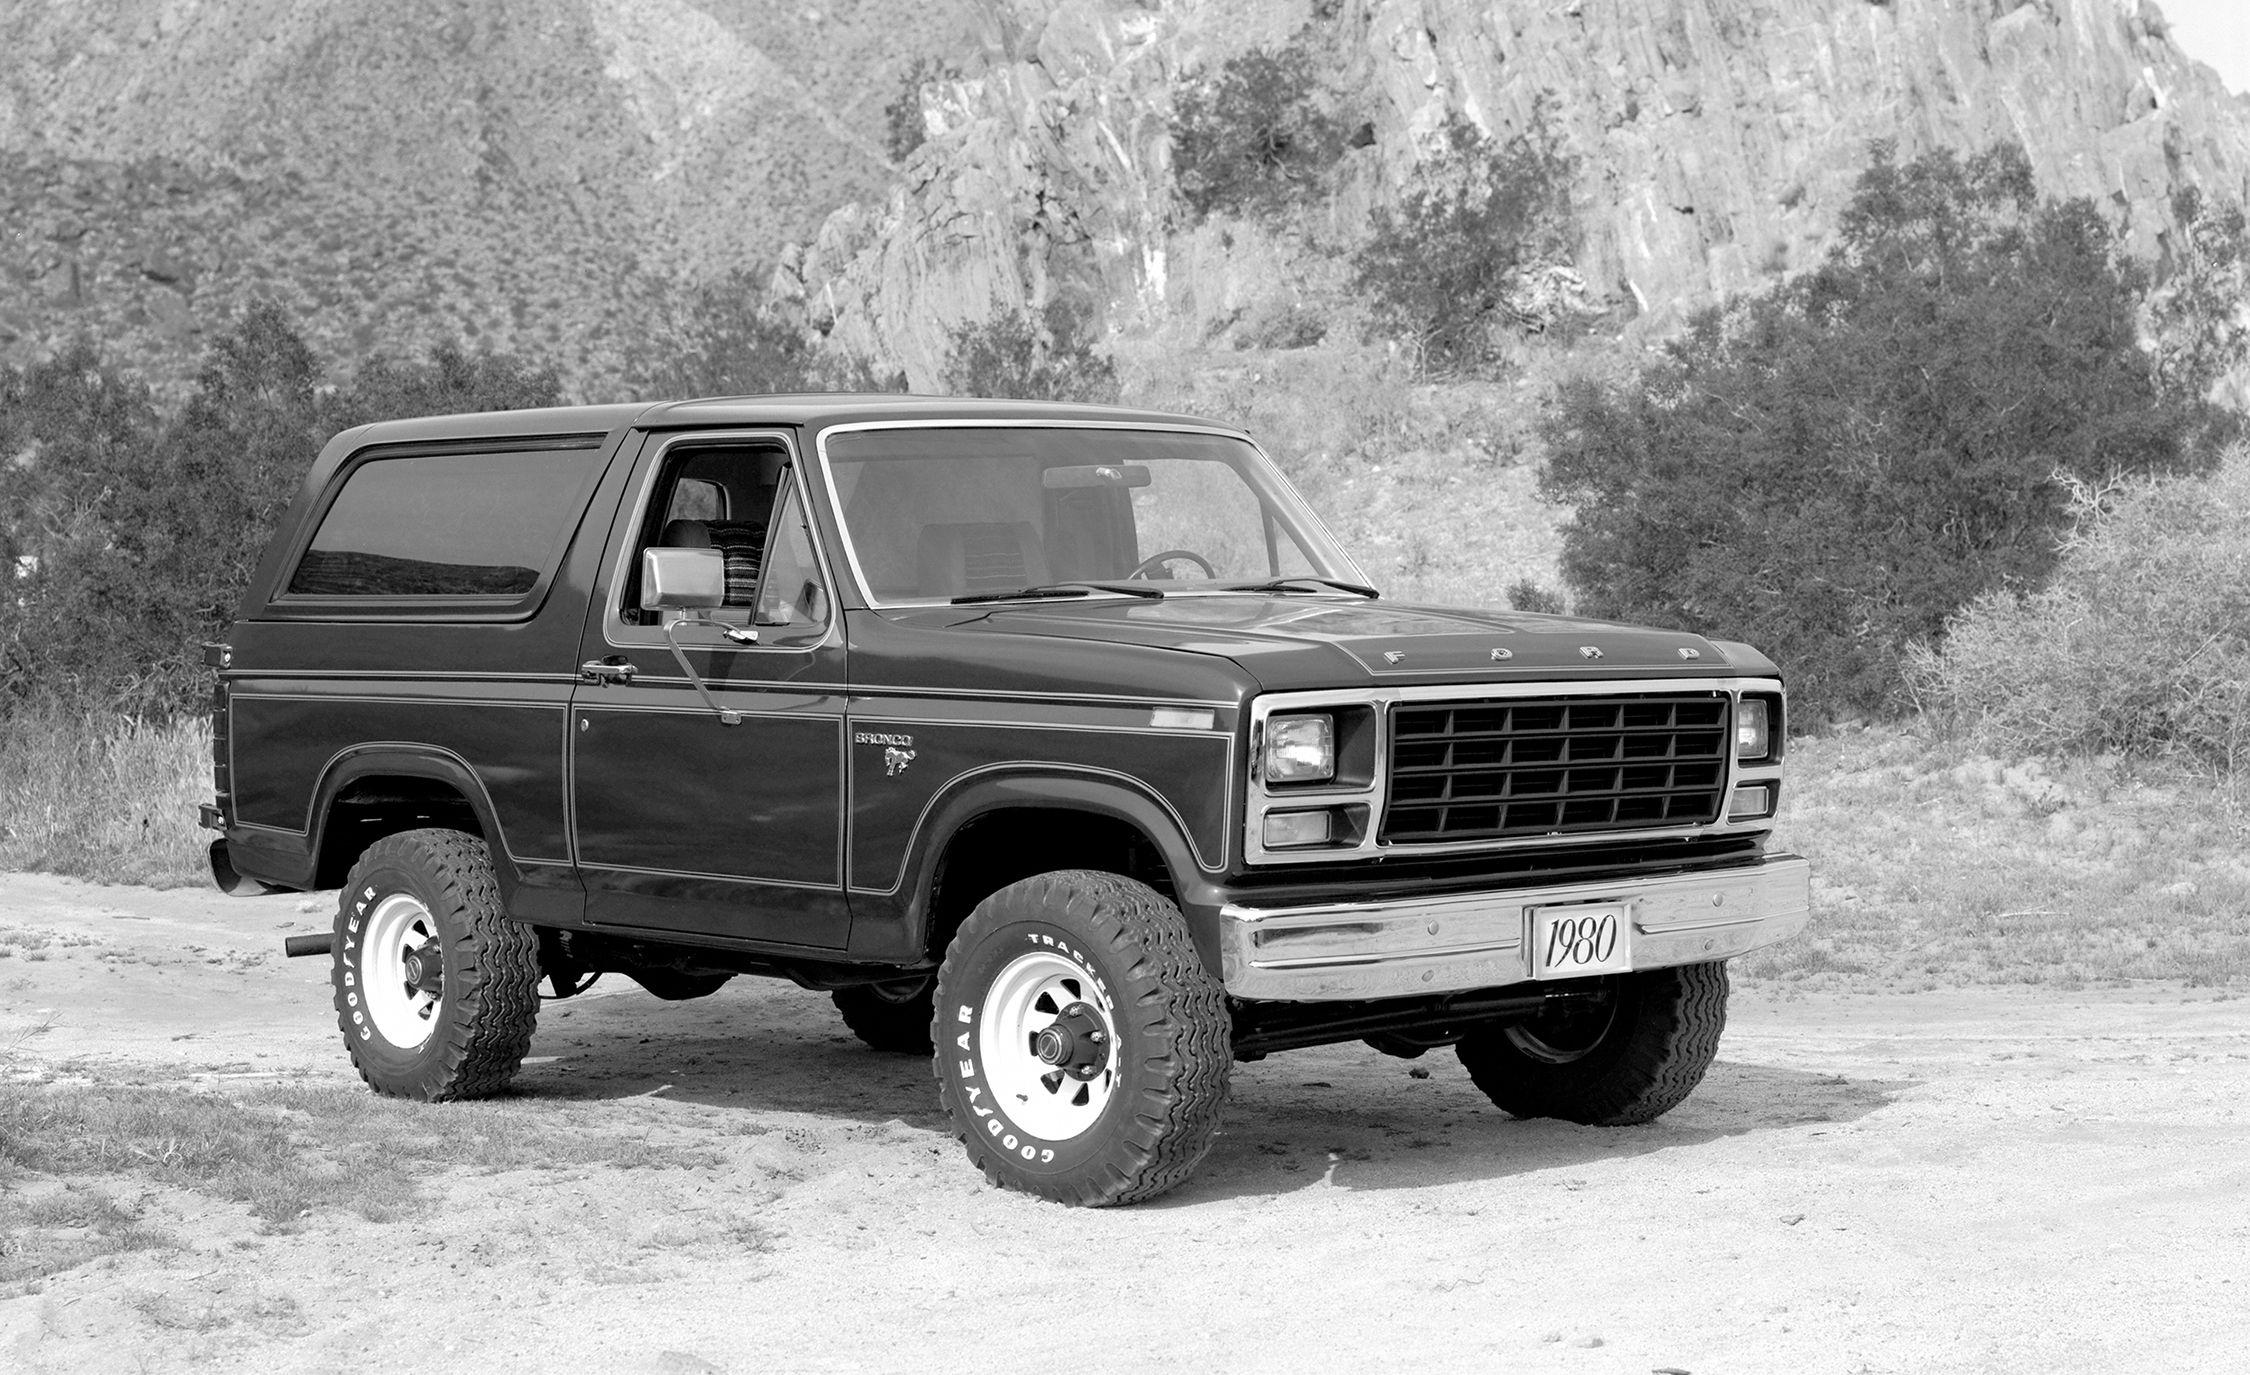 A Visual History Of The Ford Bronco From Trail Crawling To Slow 1980 Mirror Speed Chases